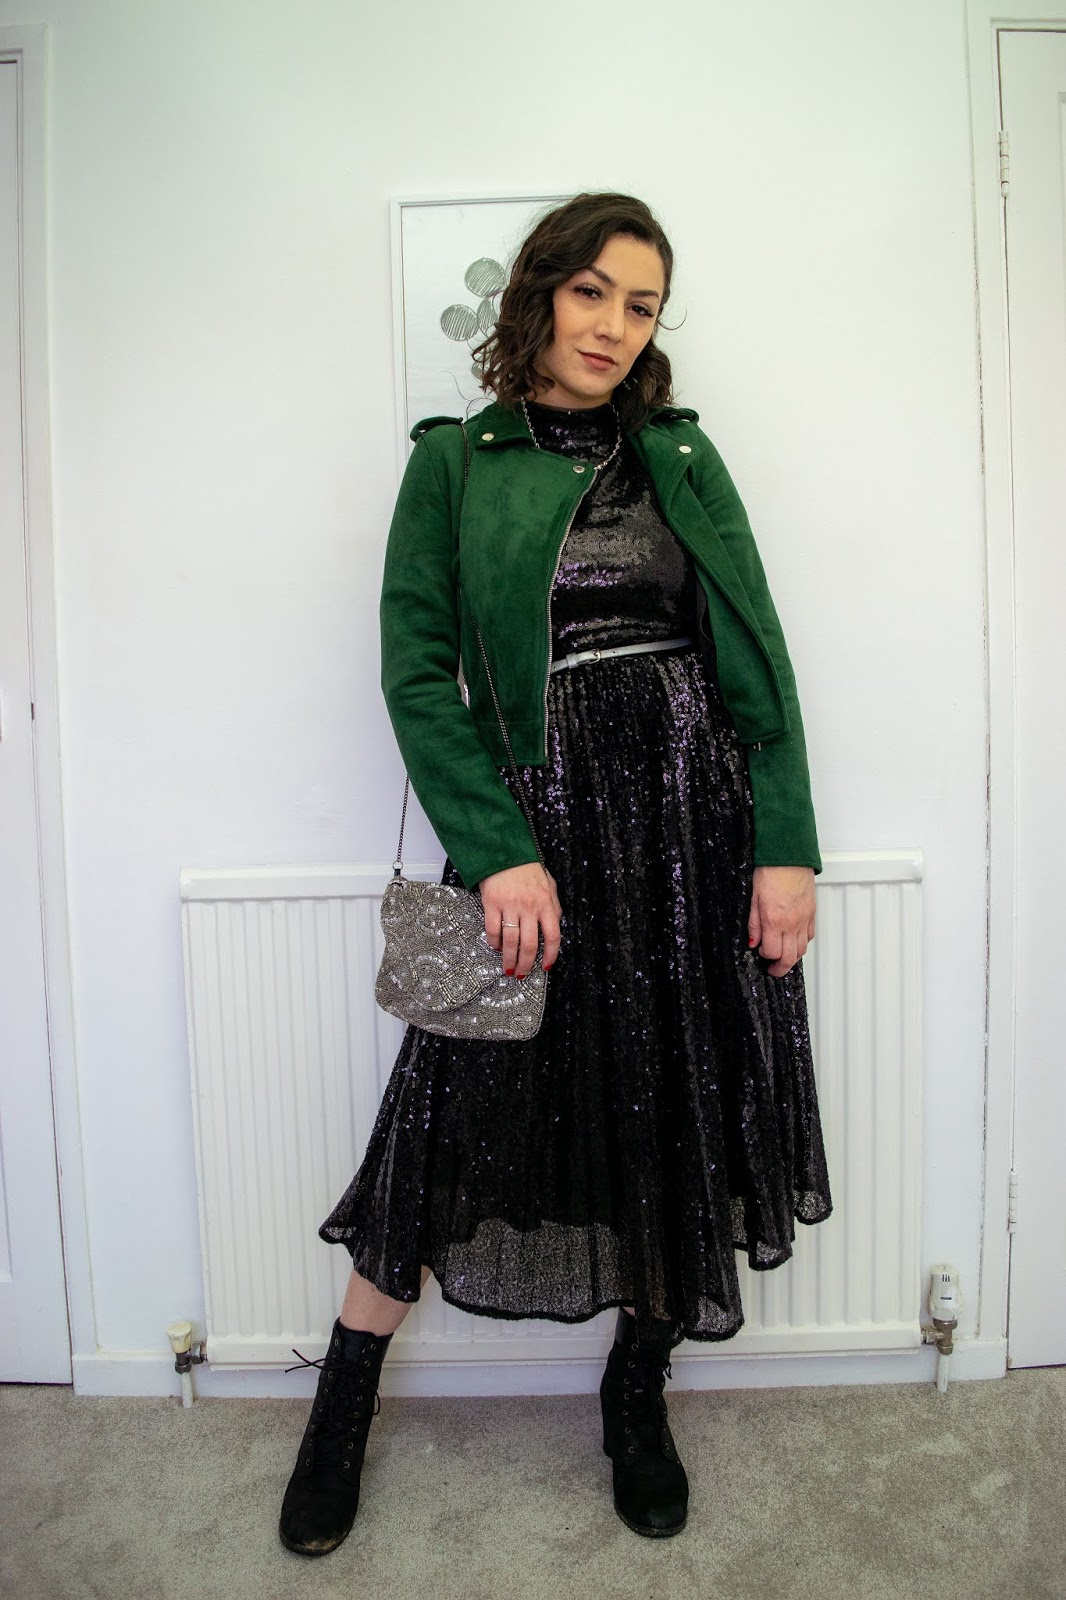 I'm standing feet shoulder width apart wearing a black sequin pleated dress with black Timberland heeled boots, a evergreen velvet biker jacket and a embellished silver clutch bag.